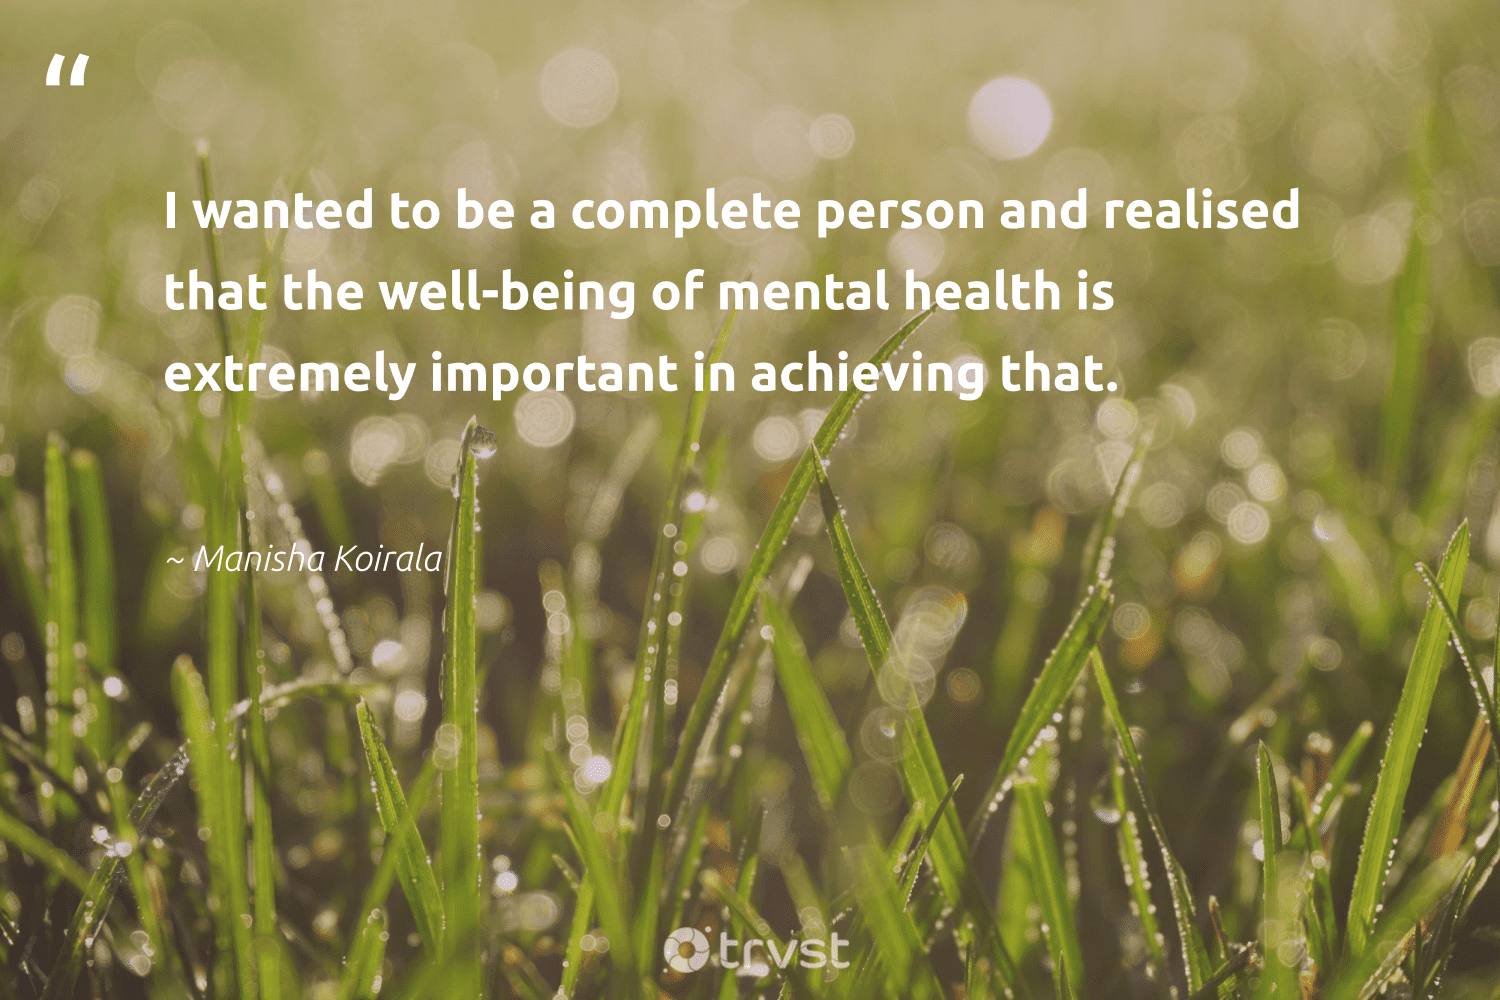 """""""I wanted to be a complete person and realised that the well-being of mental health is extremely important in achieving that.""""  - Manisha Koirala #trvst #quotes #wellbeing #health #wellbeing #mentalhealth #mindset #nevergiveup #planetearthfirst #wellness #changemakers #begreat"""